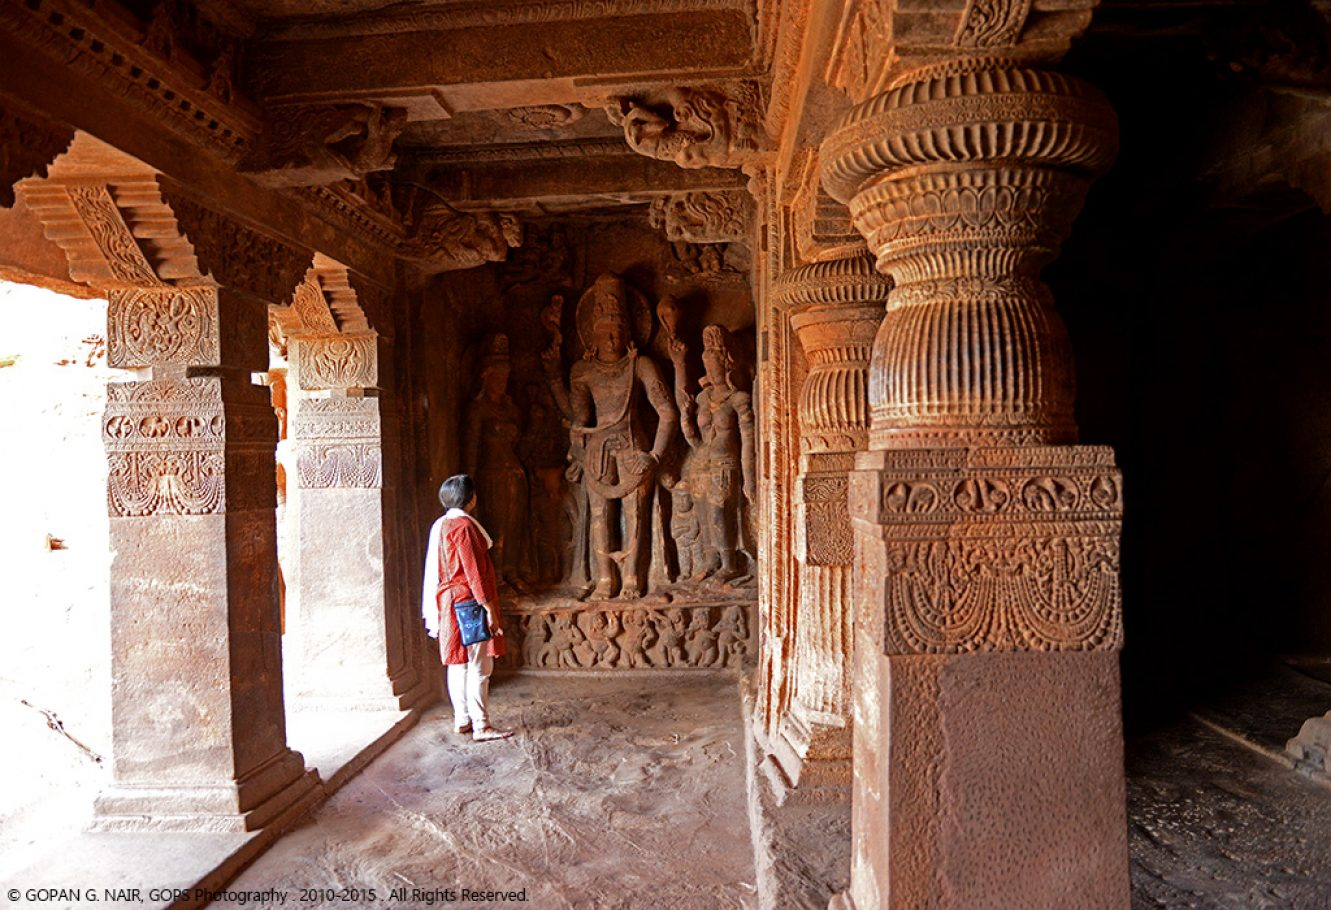 MAGNIFICENT ROCK CUT TEMPLES, BADAMI CAVES, KARNATAKA, INDIA